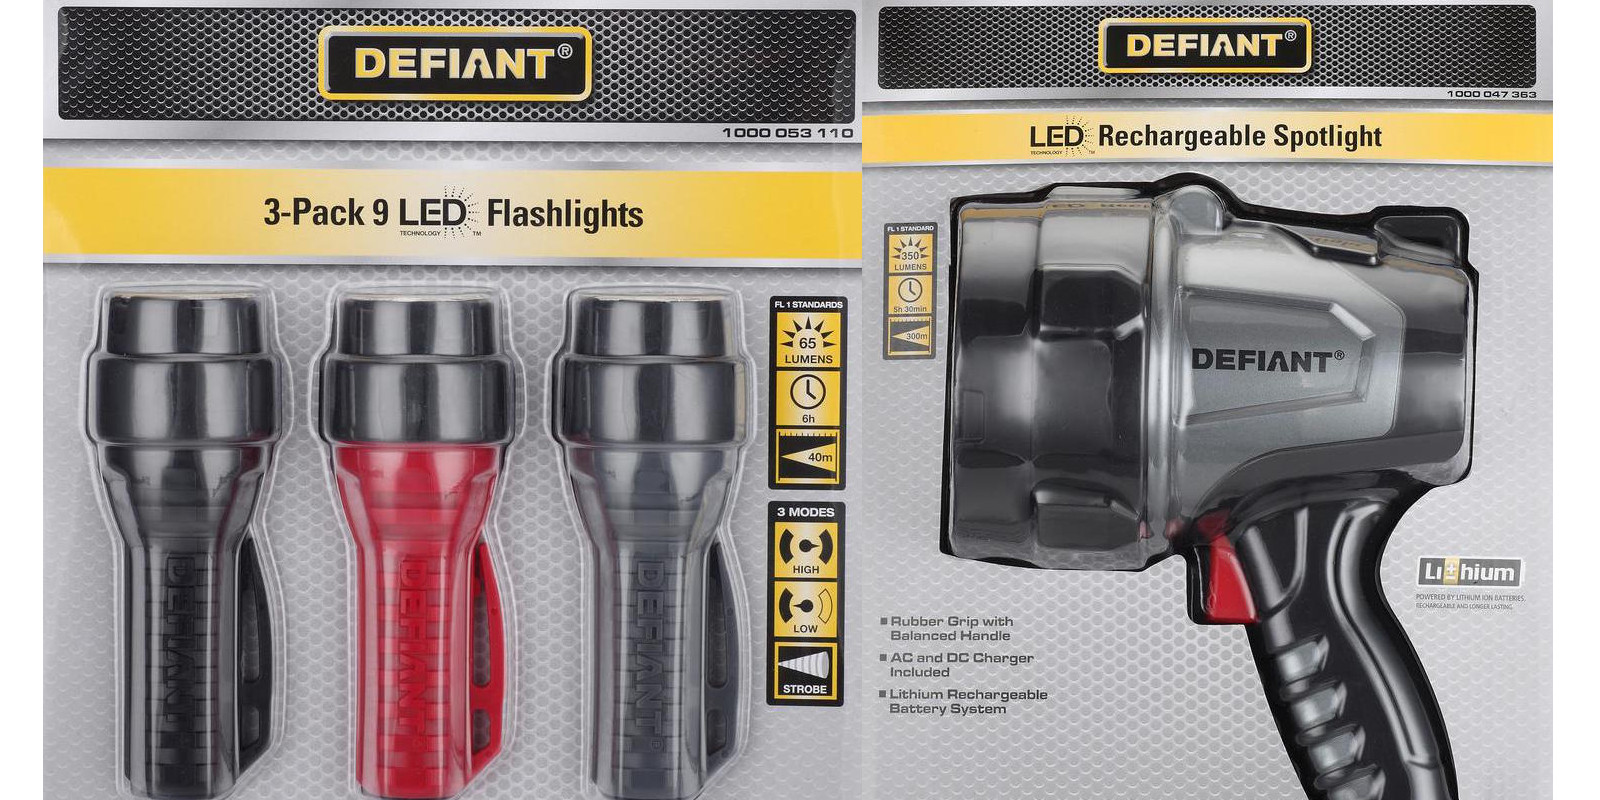 defiant-9-led-flashlights-sale-01